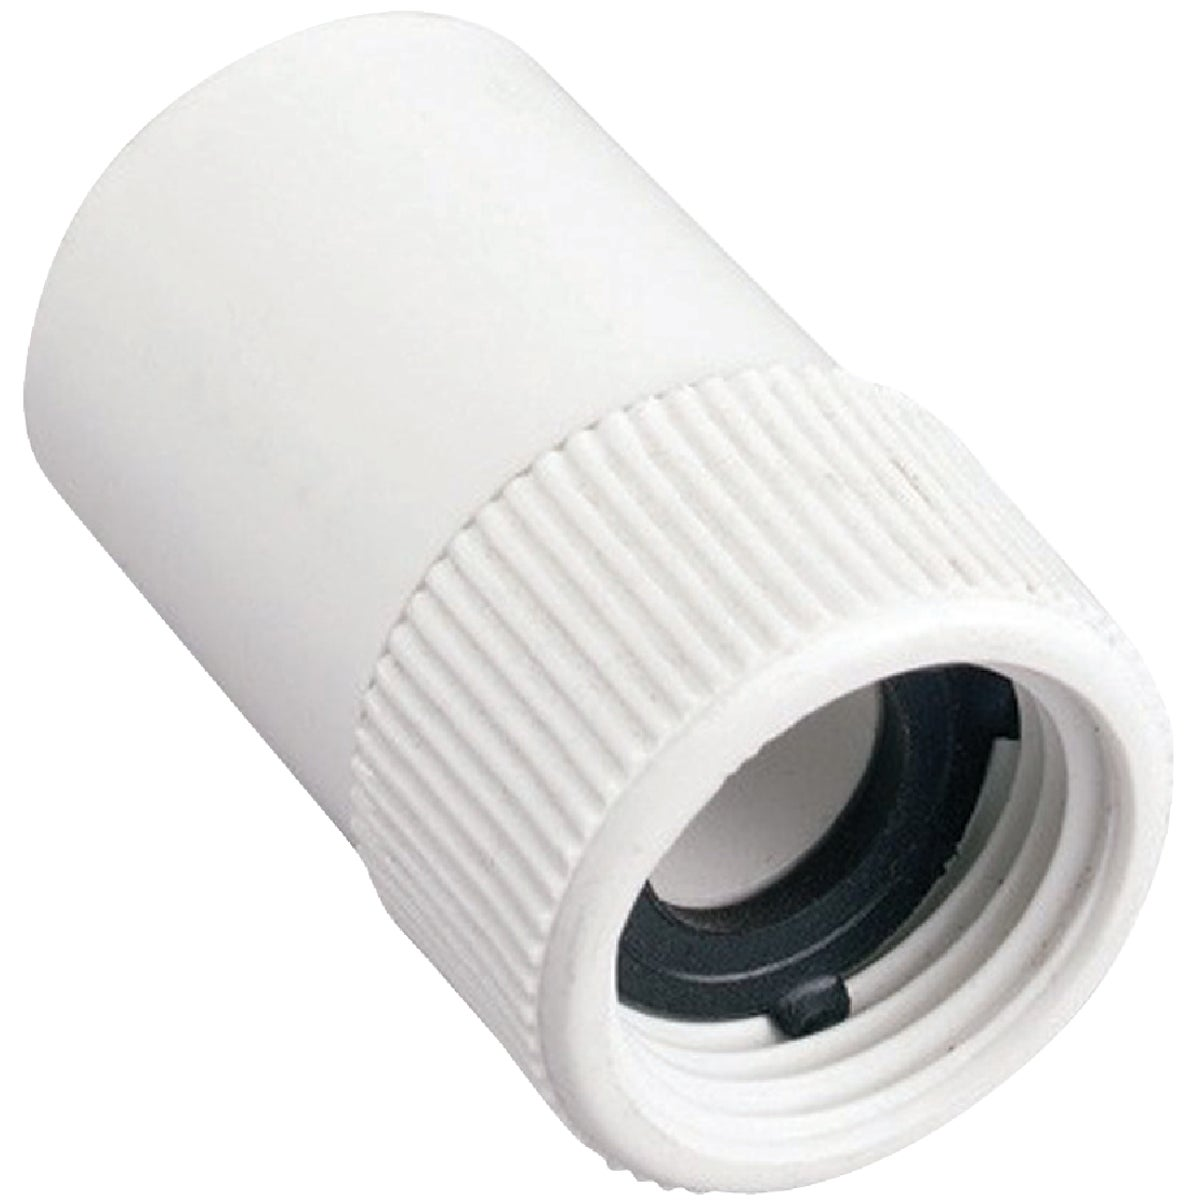 "3/4"" FHTXSLP PVC FITTING - 53360 by Orbit"